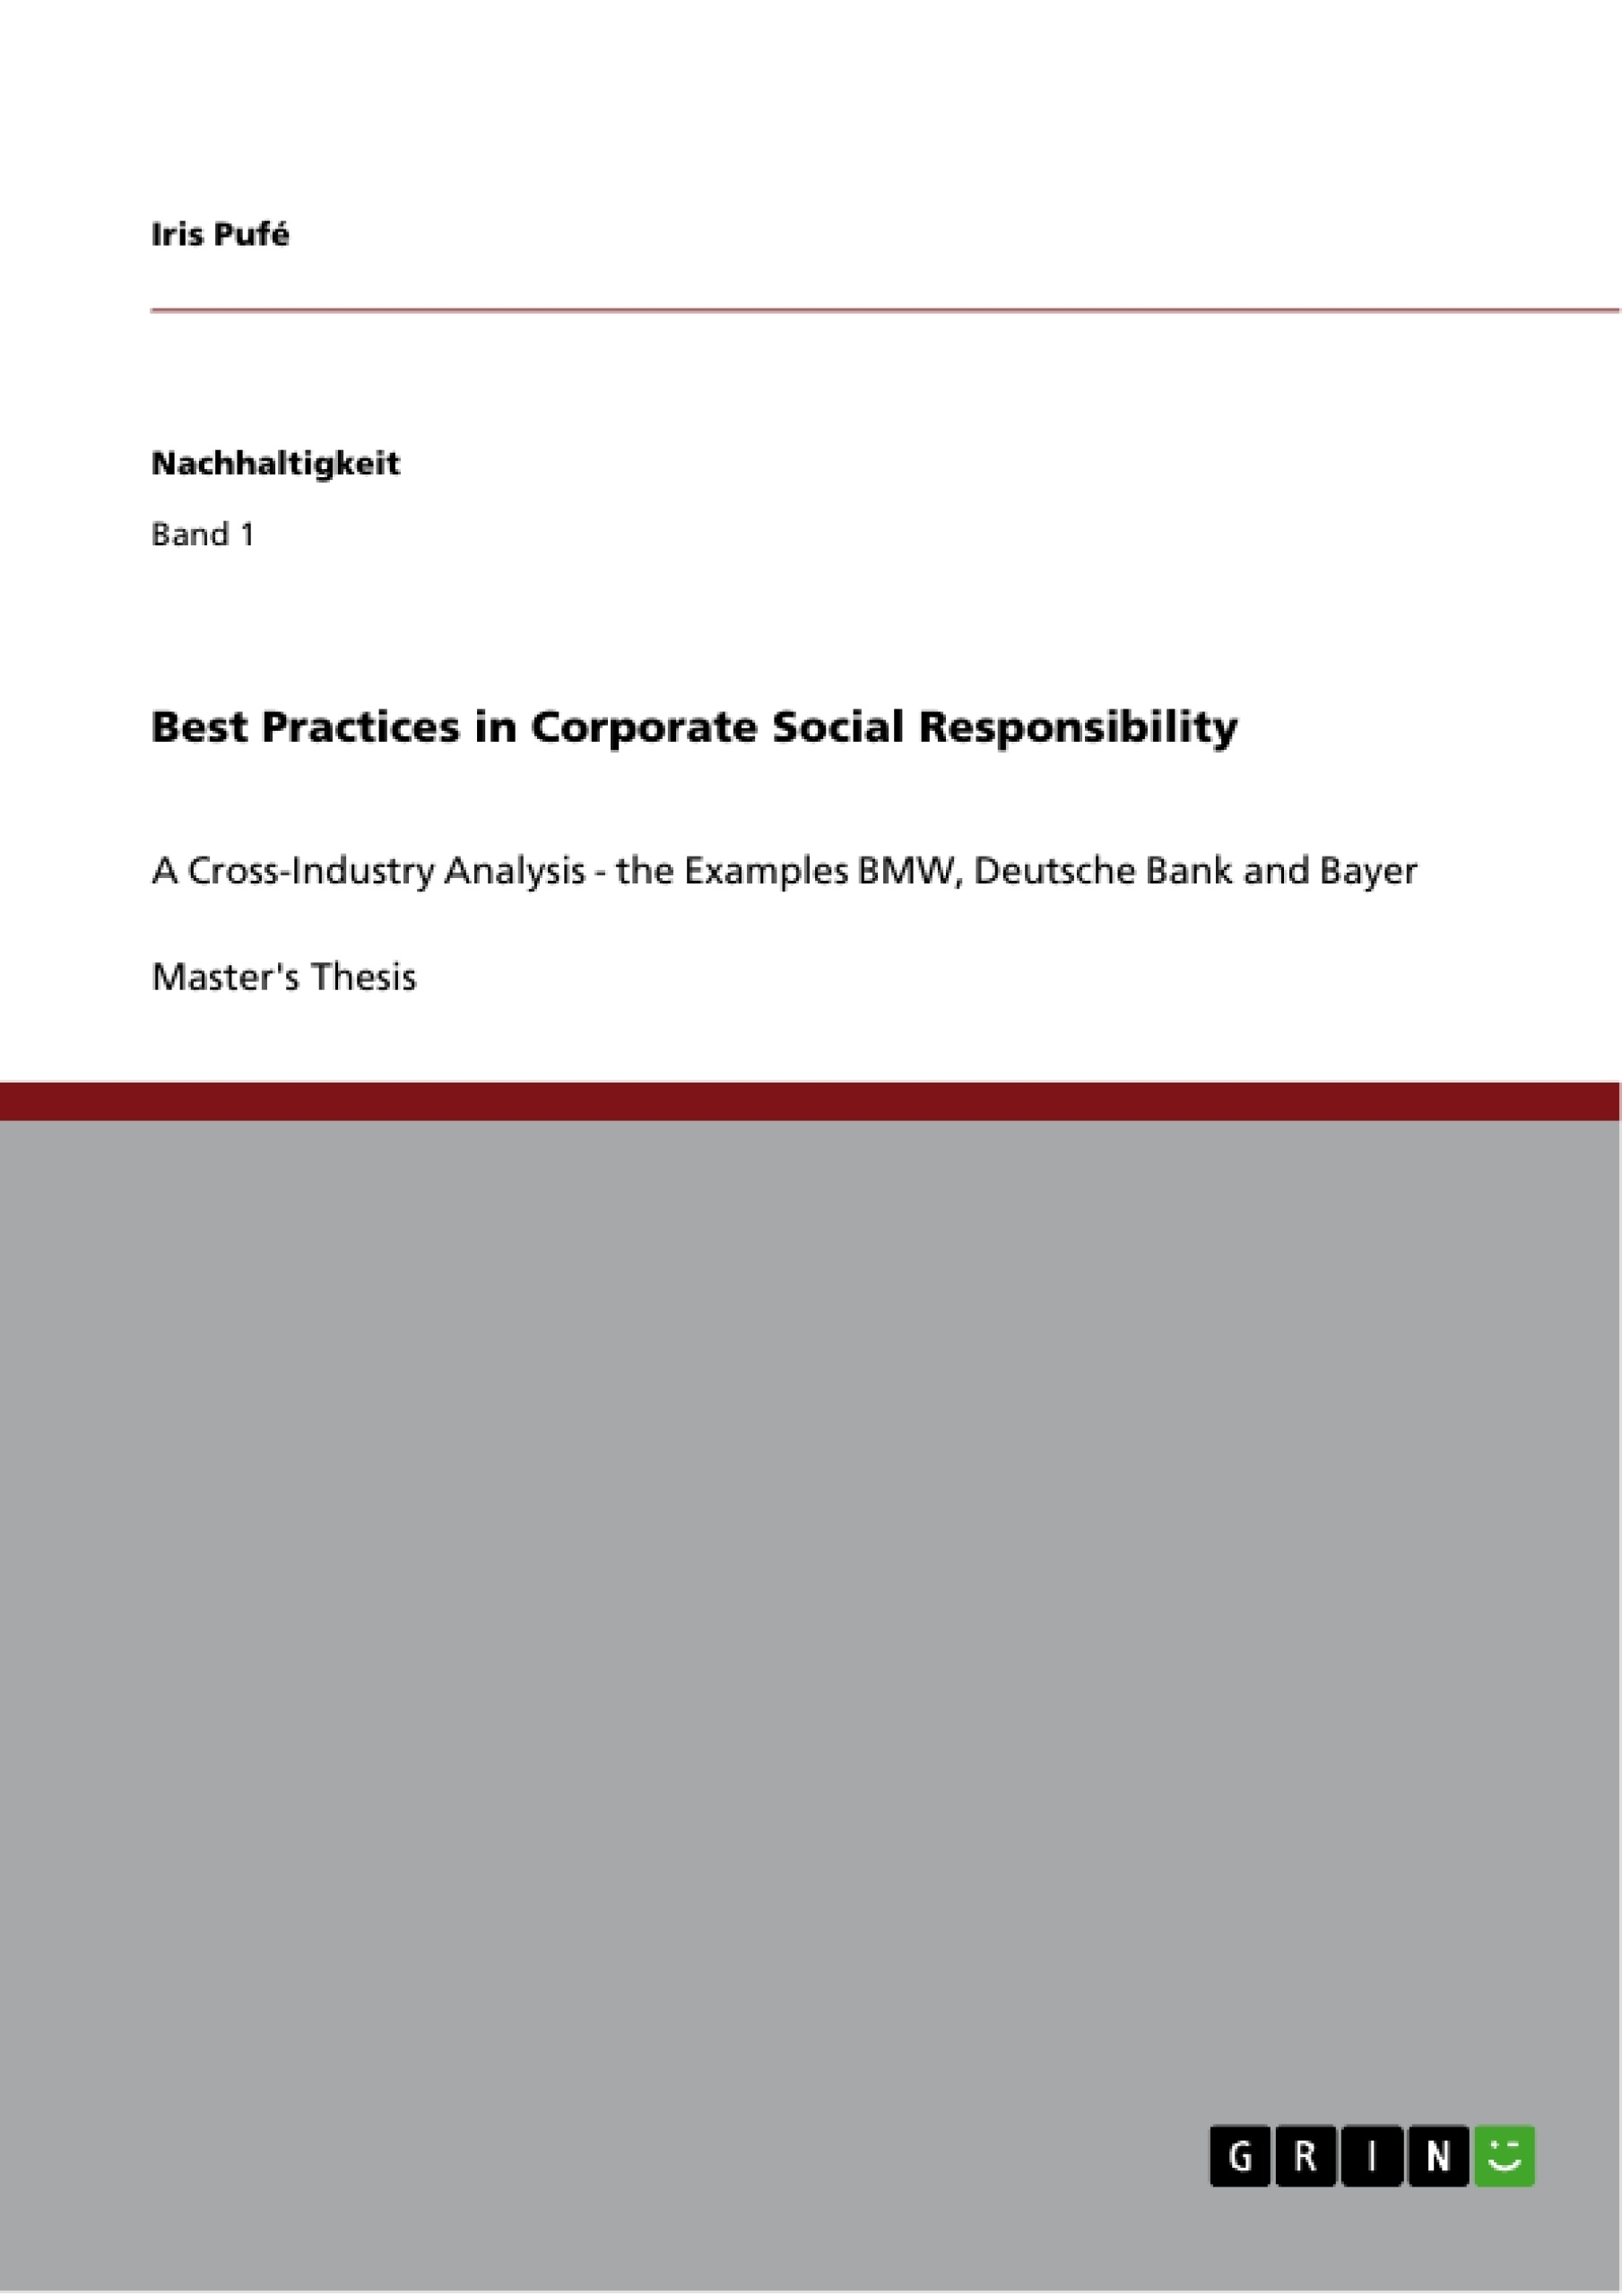 Best Practices in Corporate Social Responsibility | Publish your ...